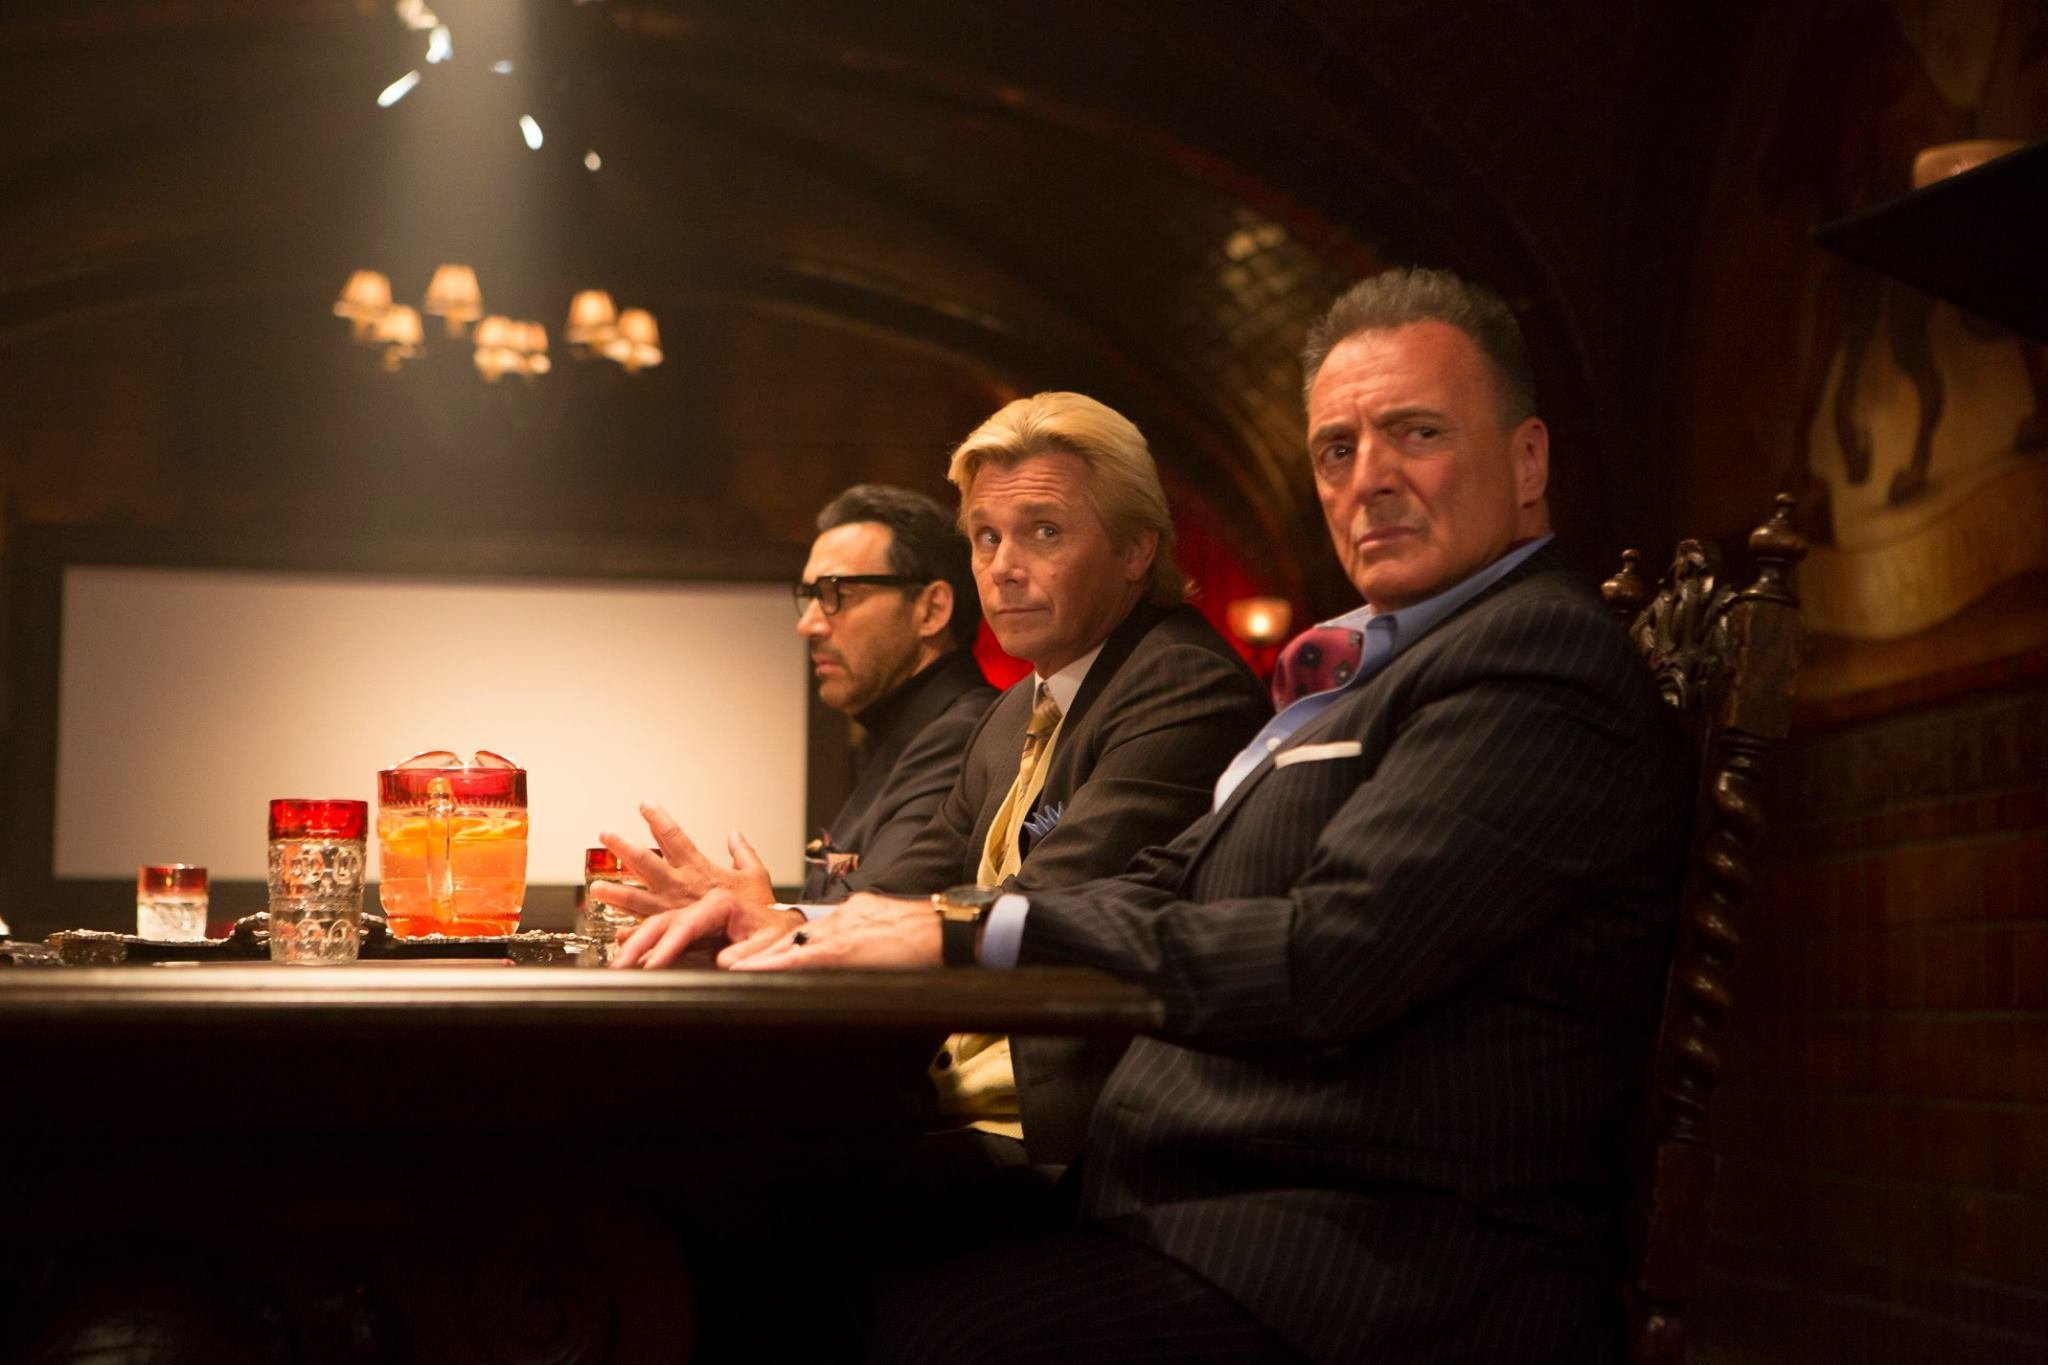 Adrian Paul, Christopher Atkins and Armand Assante in Kids vs Monsters (2015)